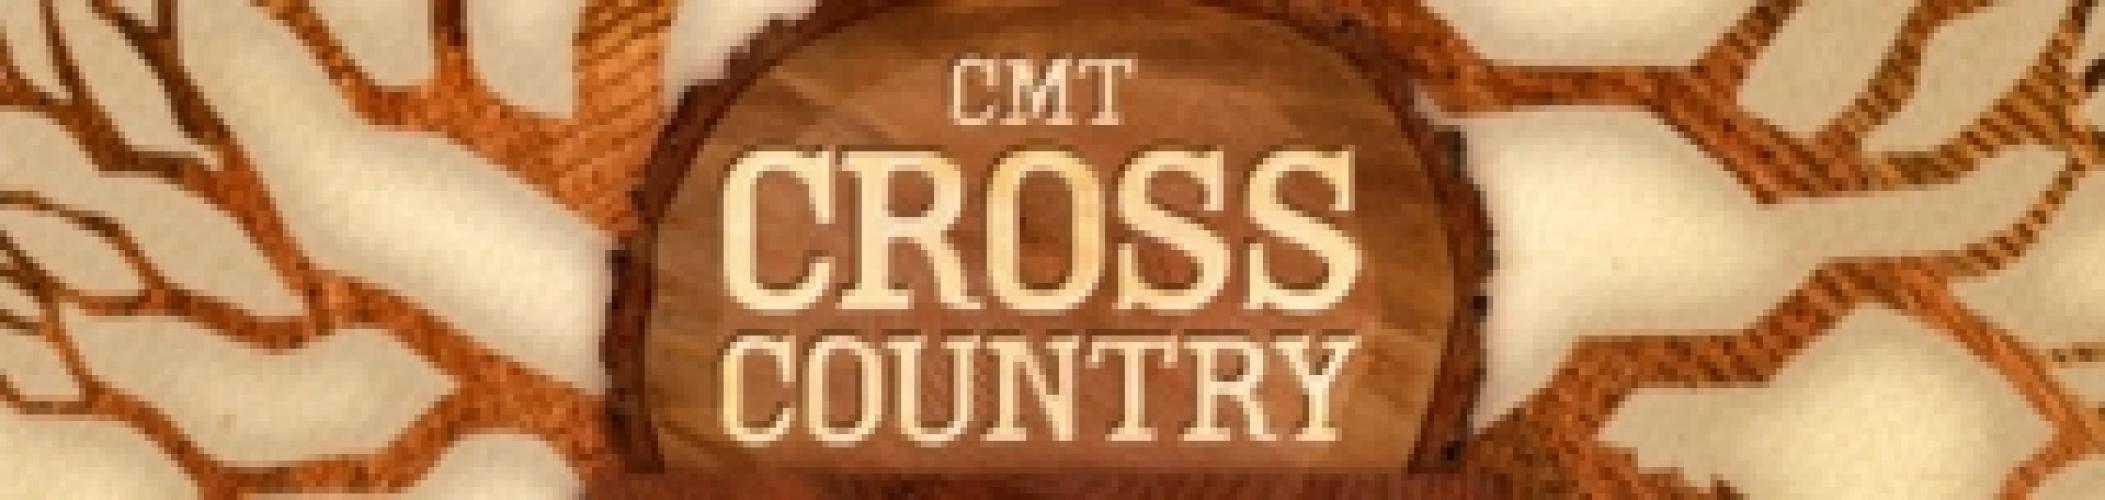 Cross Country next episode air date poster